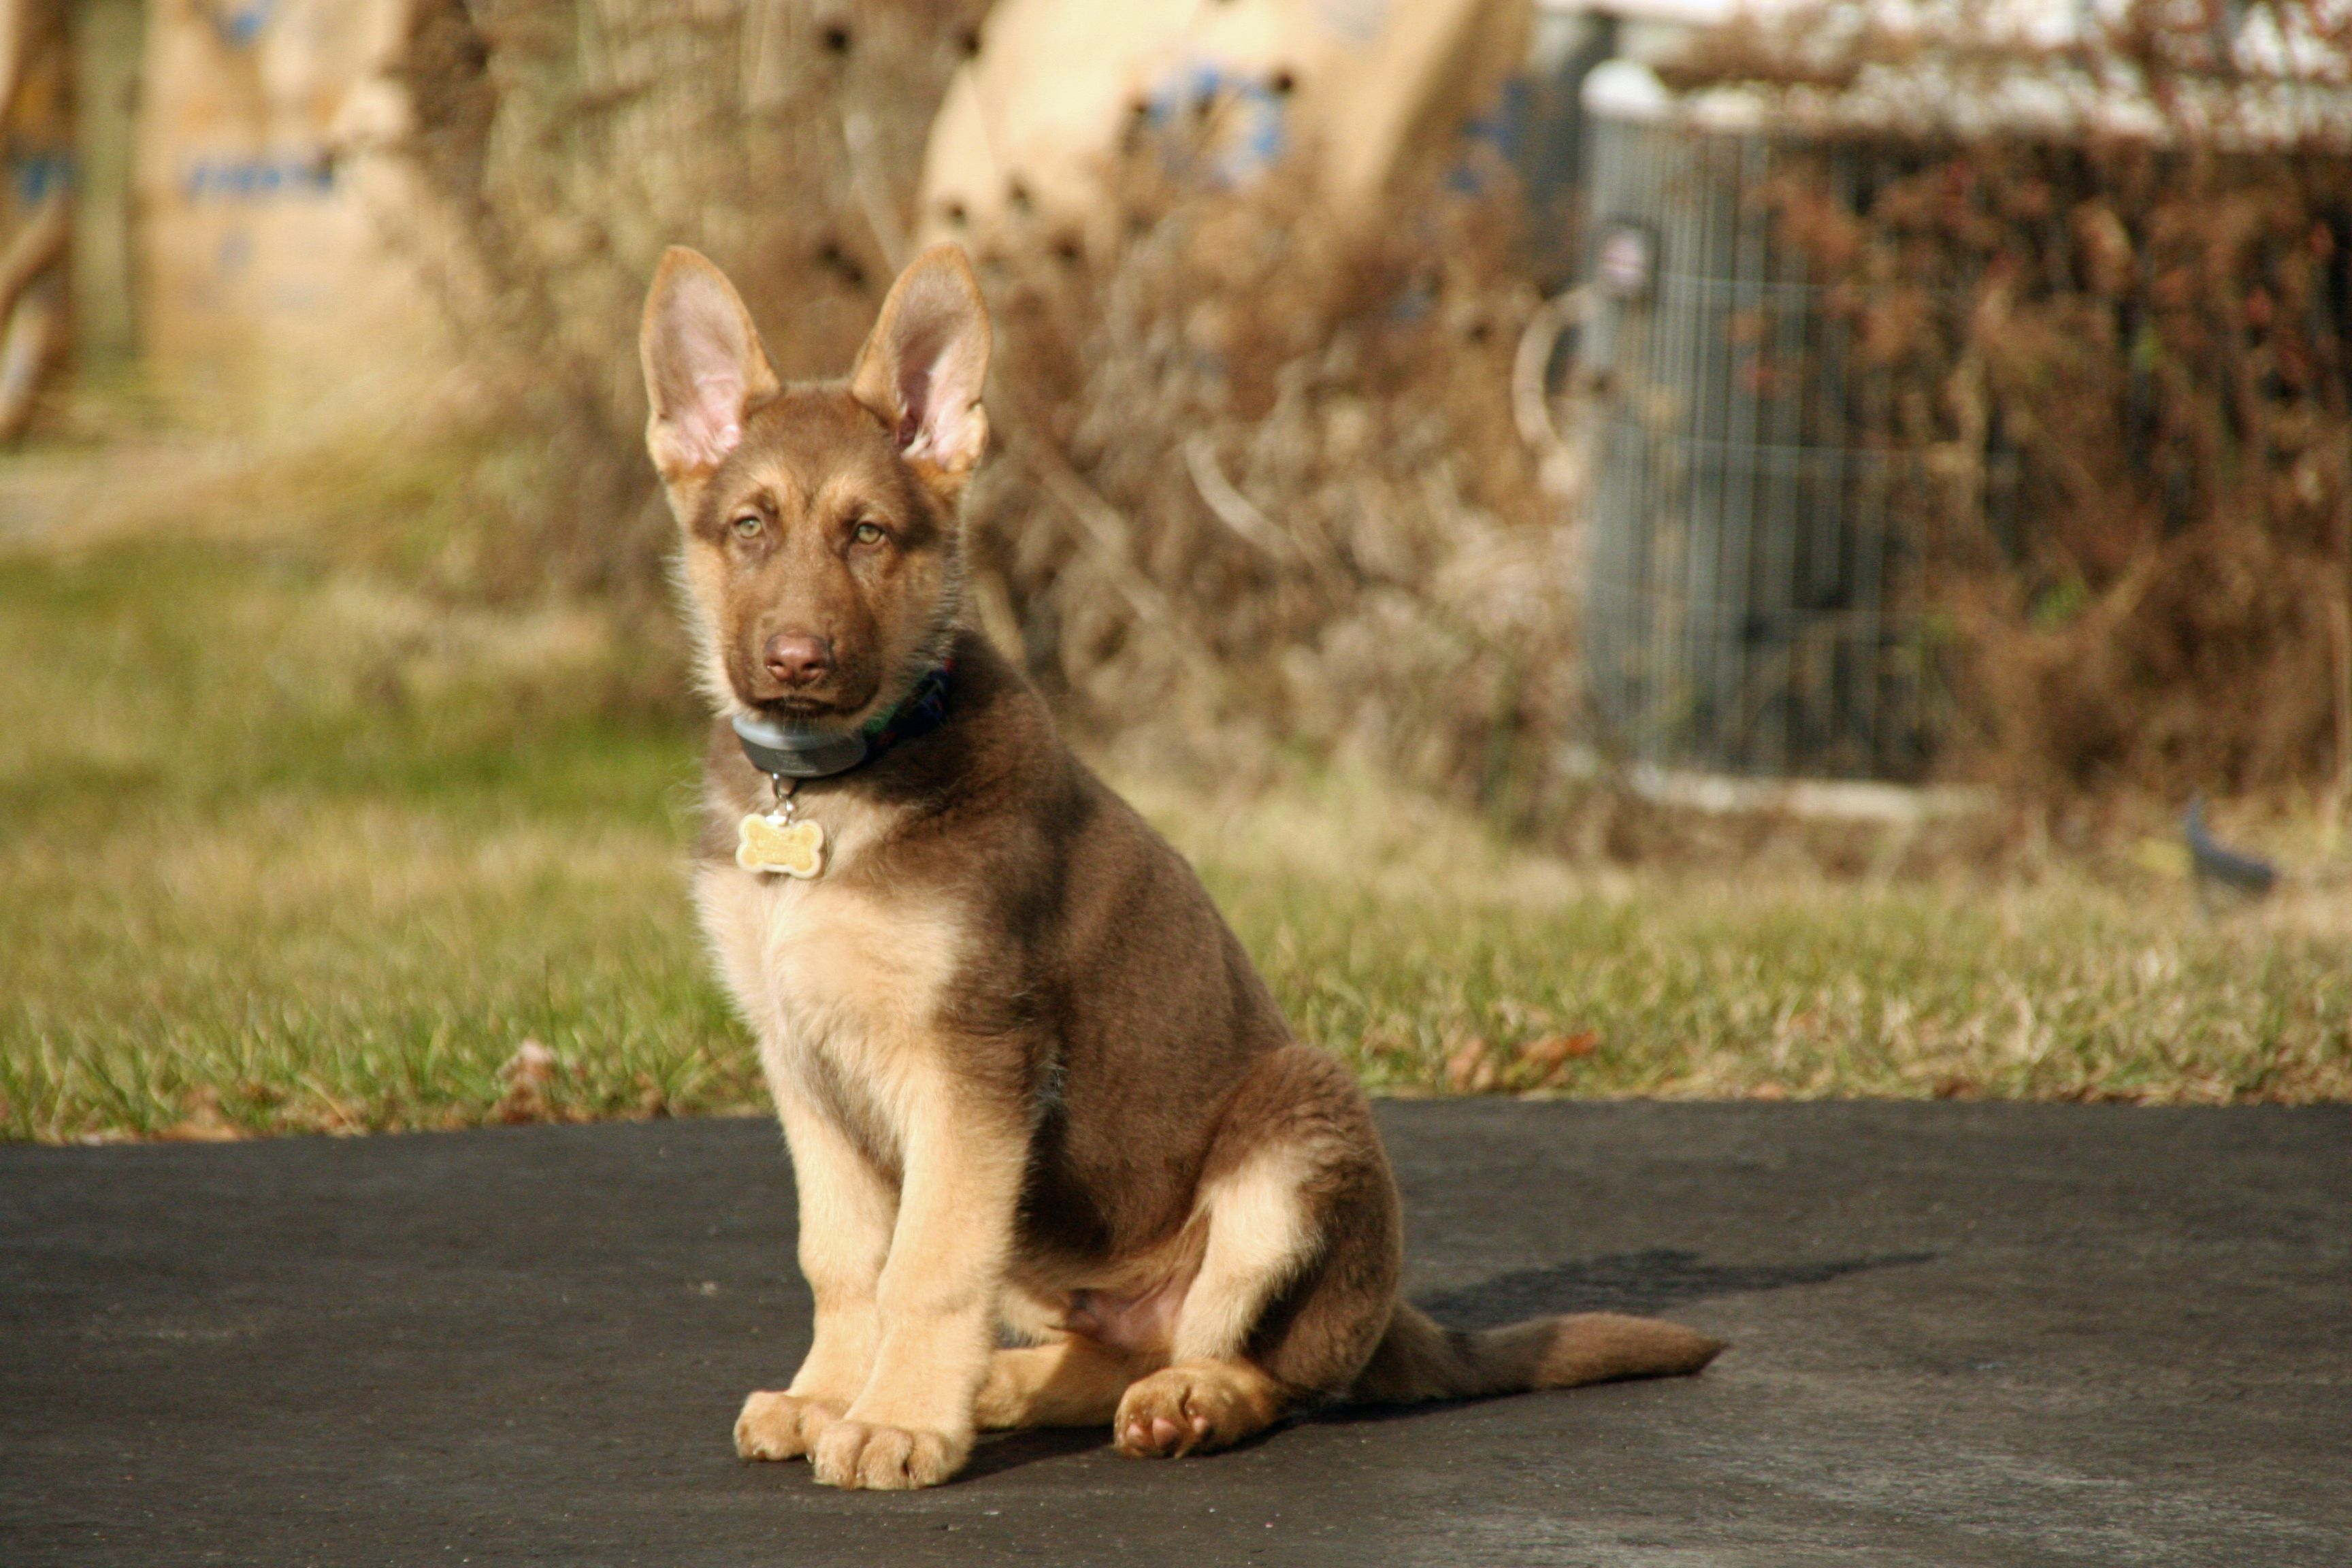 Pin by SueGal on Liver-coated German Shepherds | Pinterest